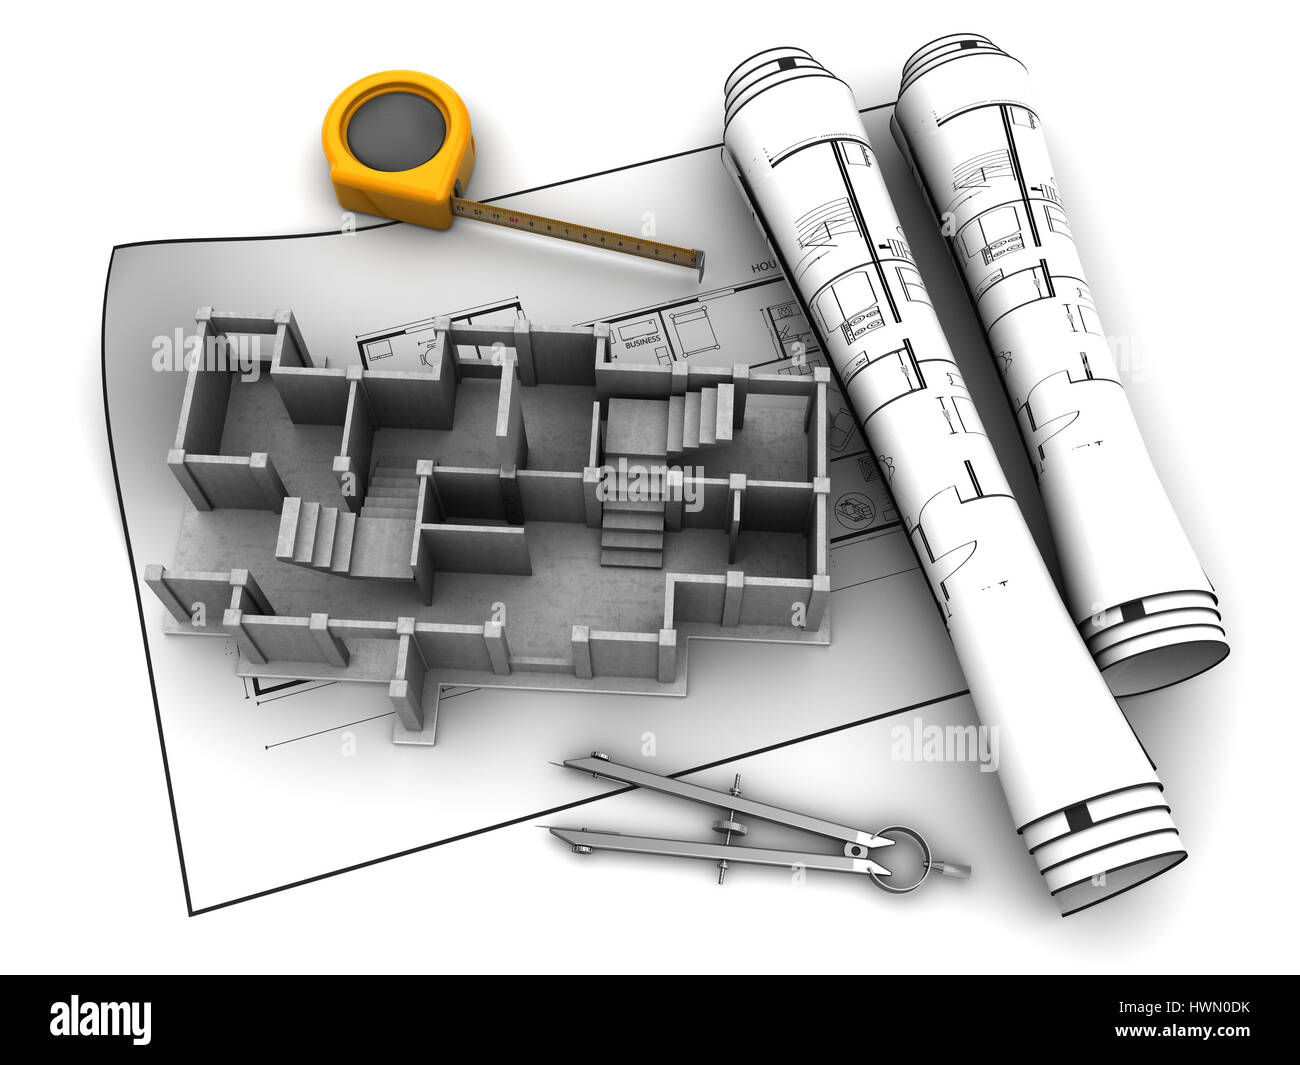 City architecture 3d model stock photos city architecture 3d model abstract 3d illustration of construction over blueprints stock image malvernweather Images